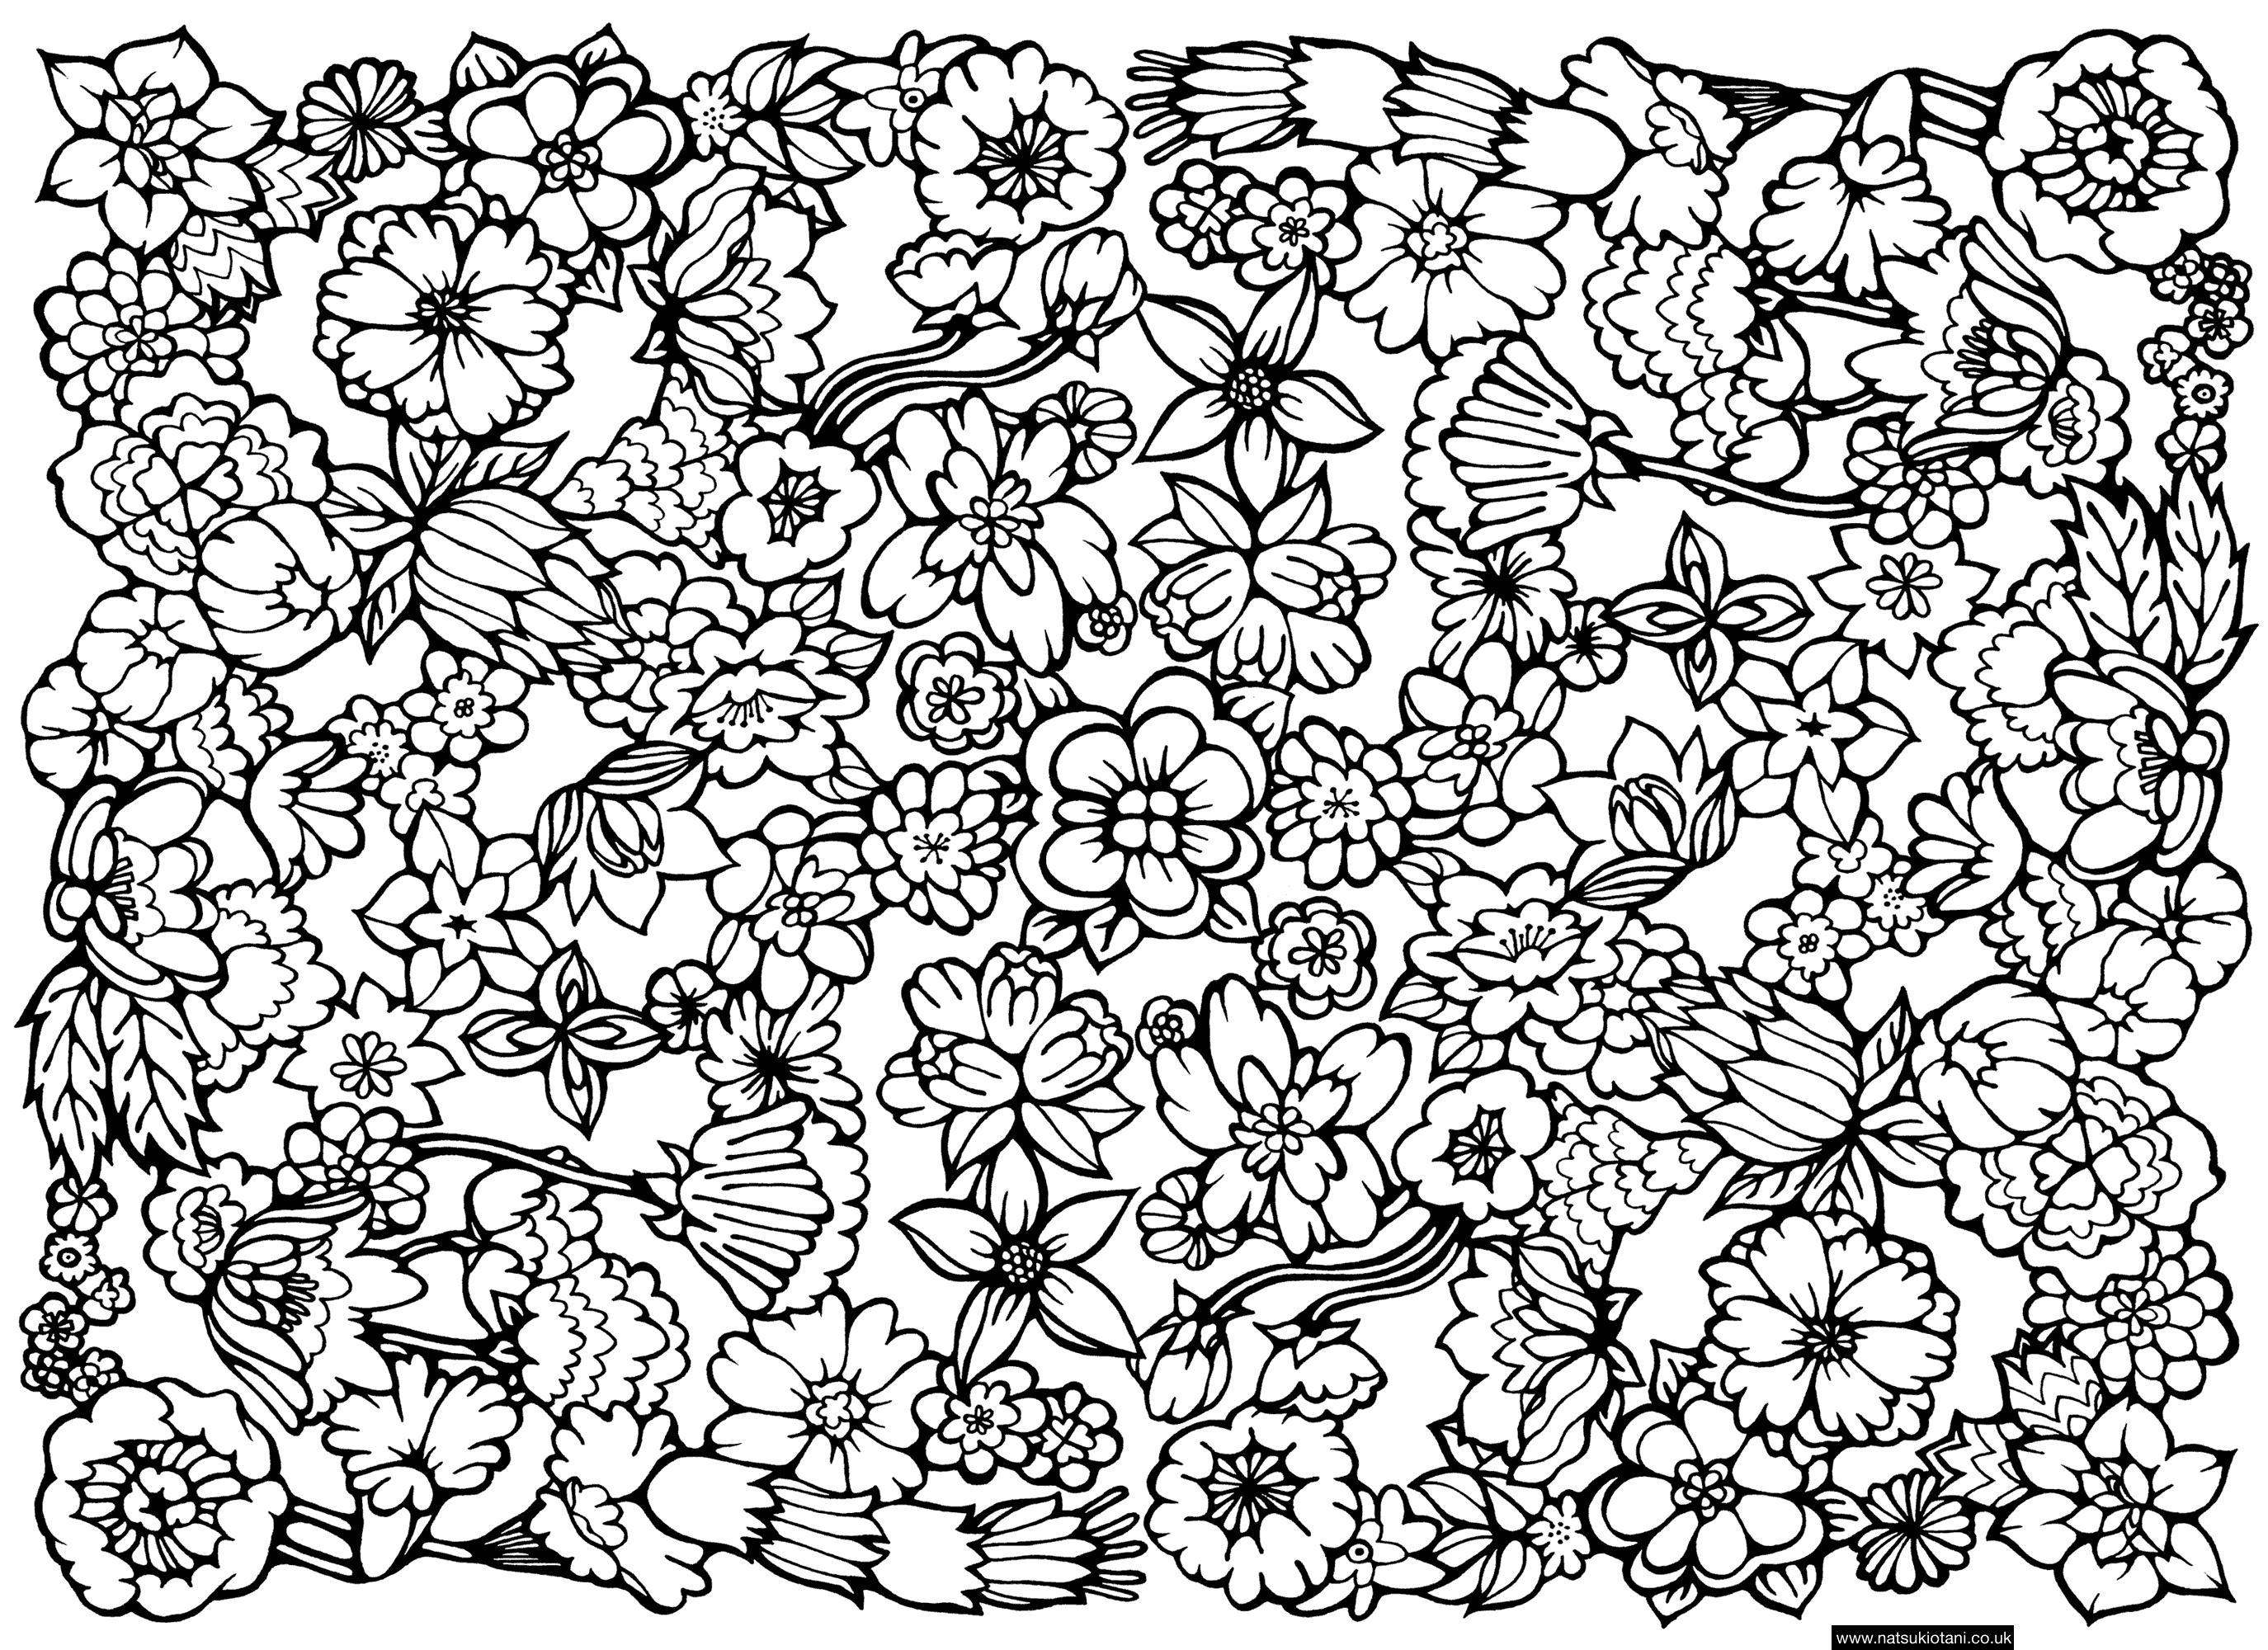 flower coloring patterns free printable flower coloring pages for kids best coloring patterns flower